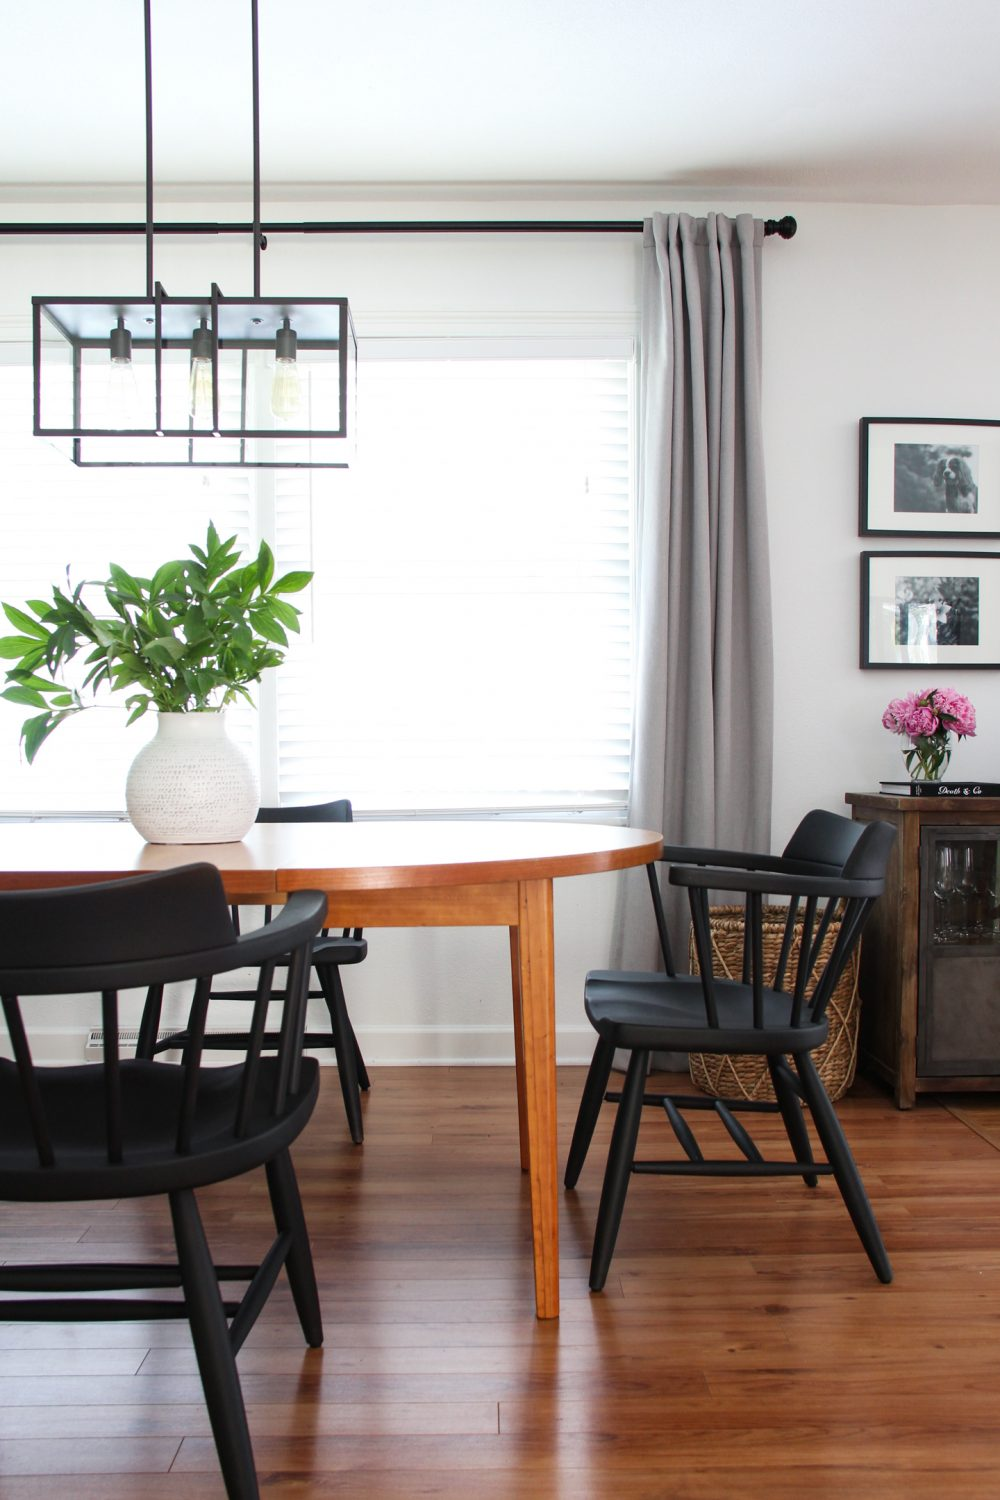 Black spindle chairs in dining room | Lumber Loves Lace | lumberloveslace.com